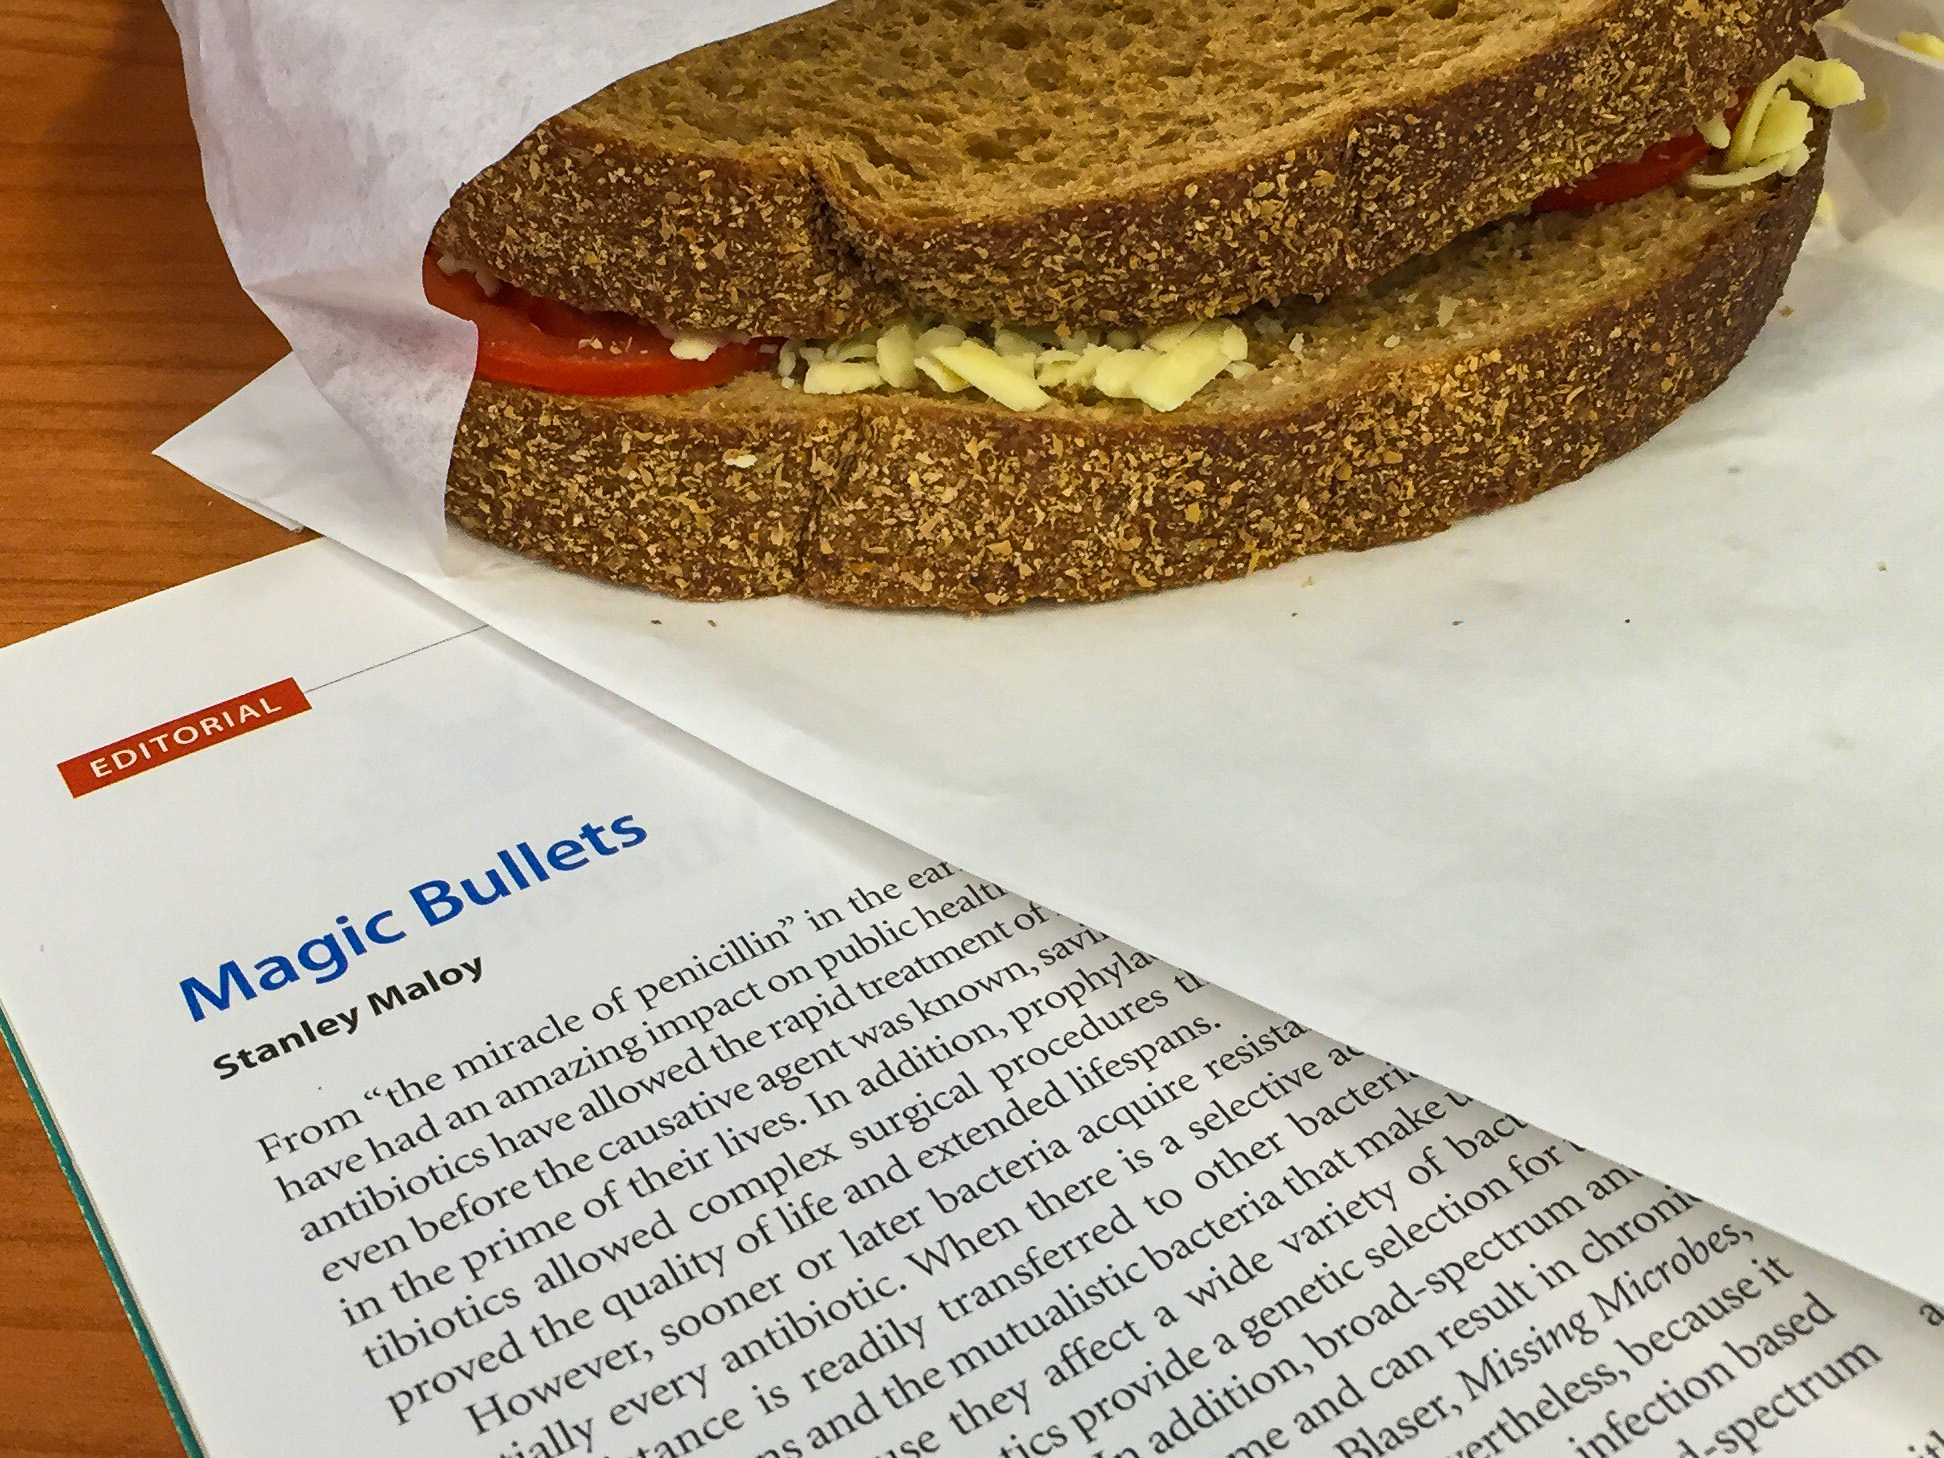 Tomato and cheese sandwich for lunch while reading about antimicrobial resistance